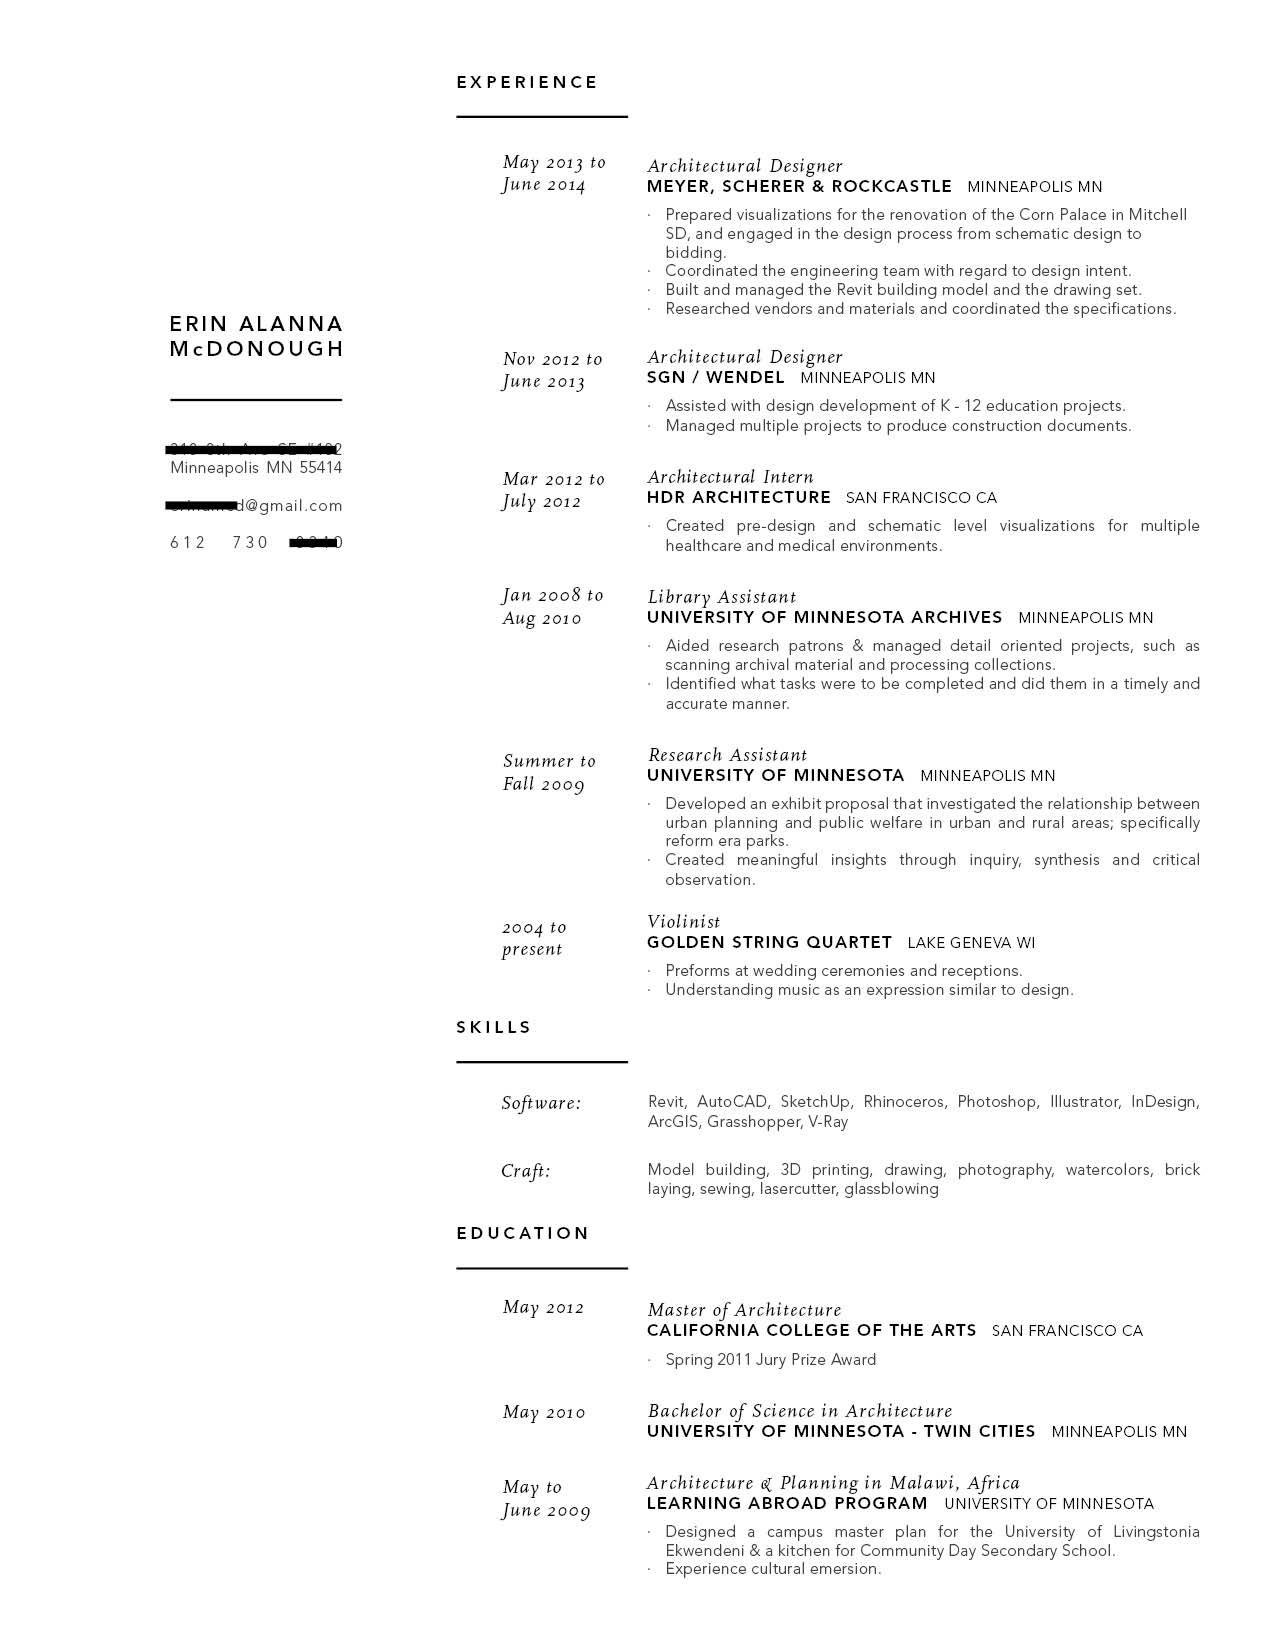 epub resume white space